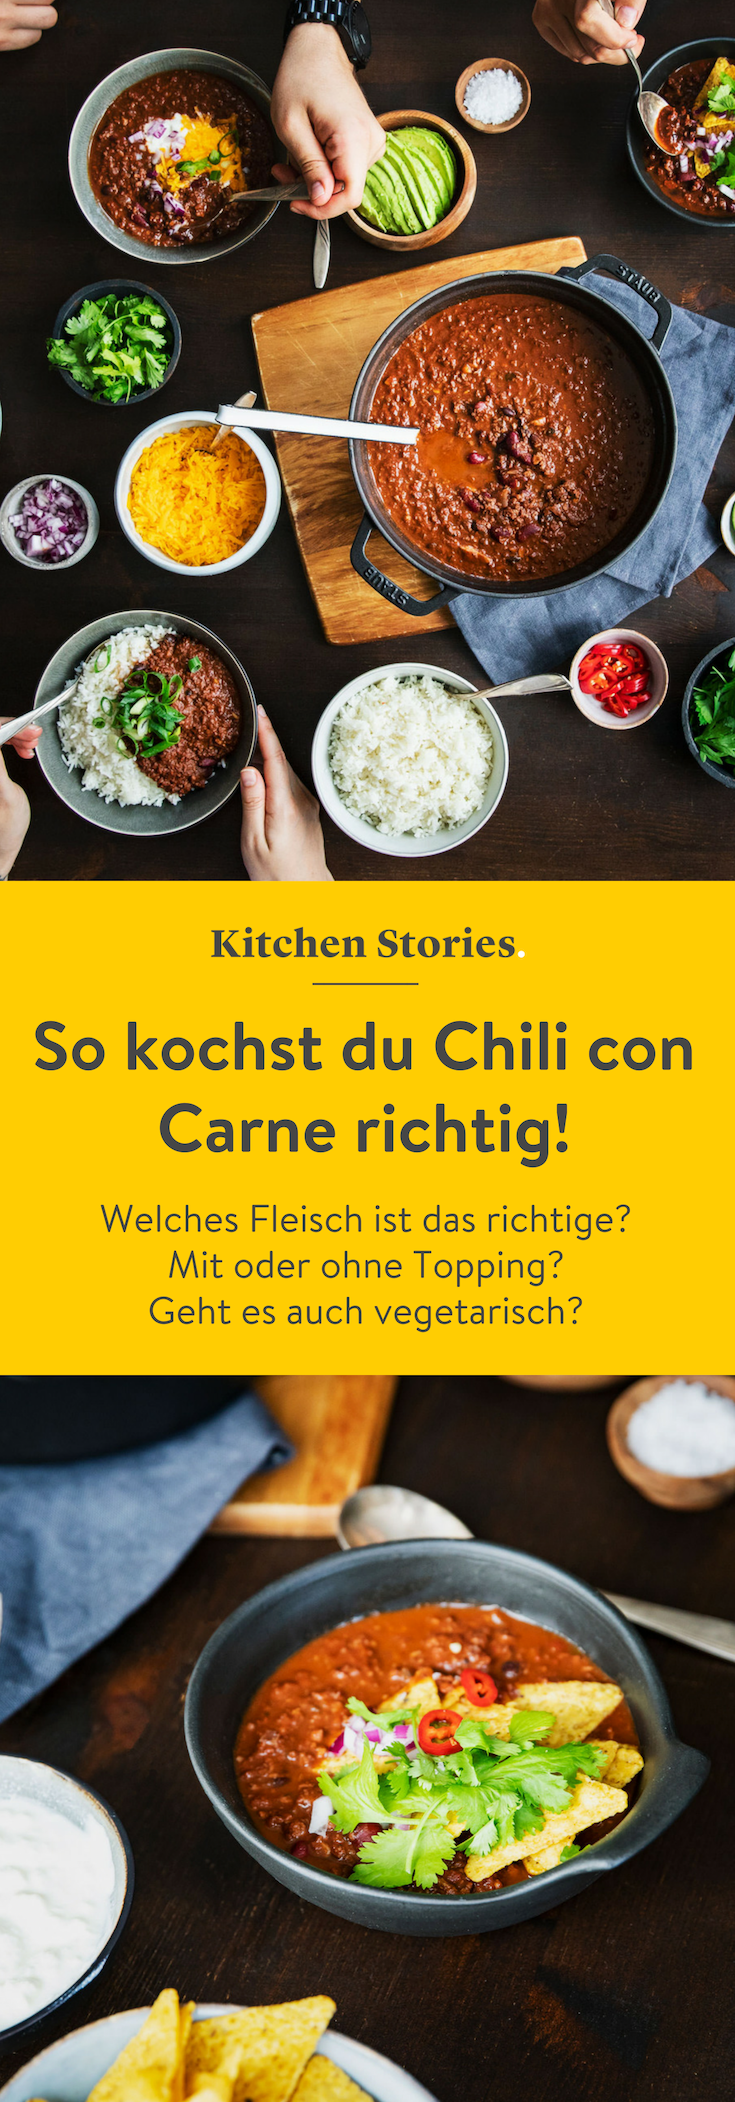 How To Cook The Perfect Chili Con Carne | Stories | Kitchen stories